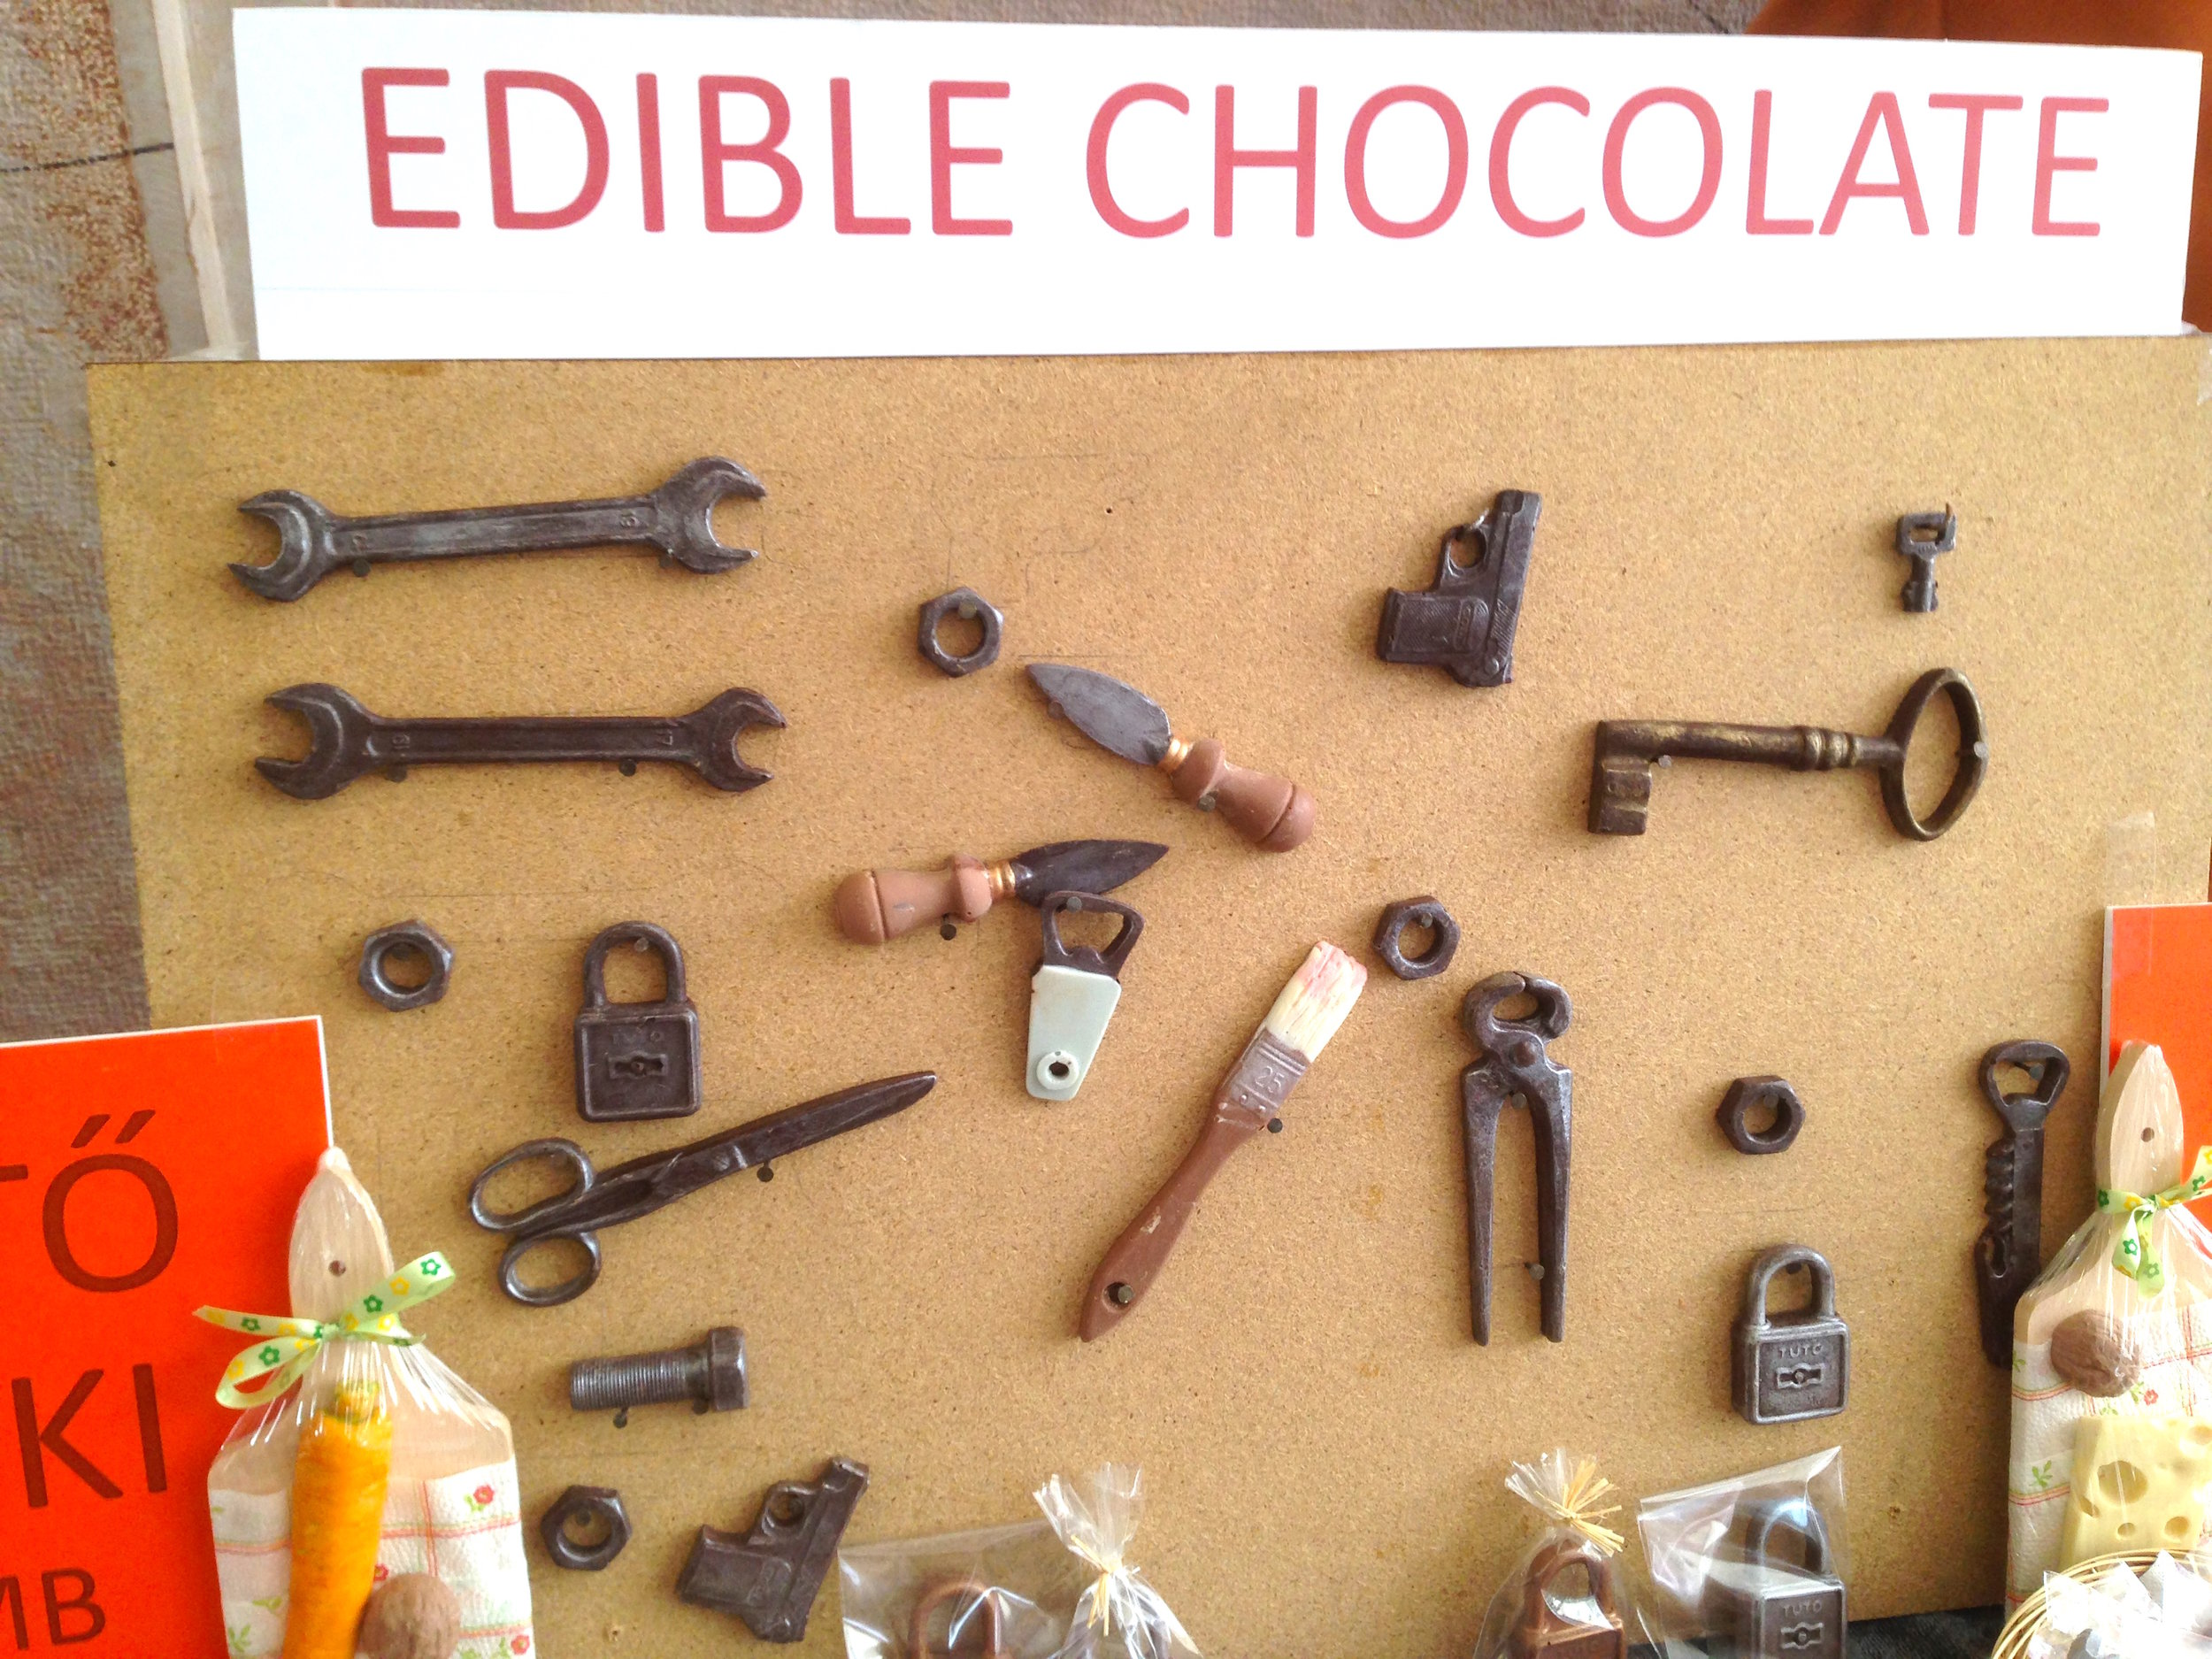 Edible chocolate tools.JPG